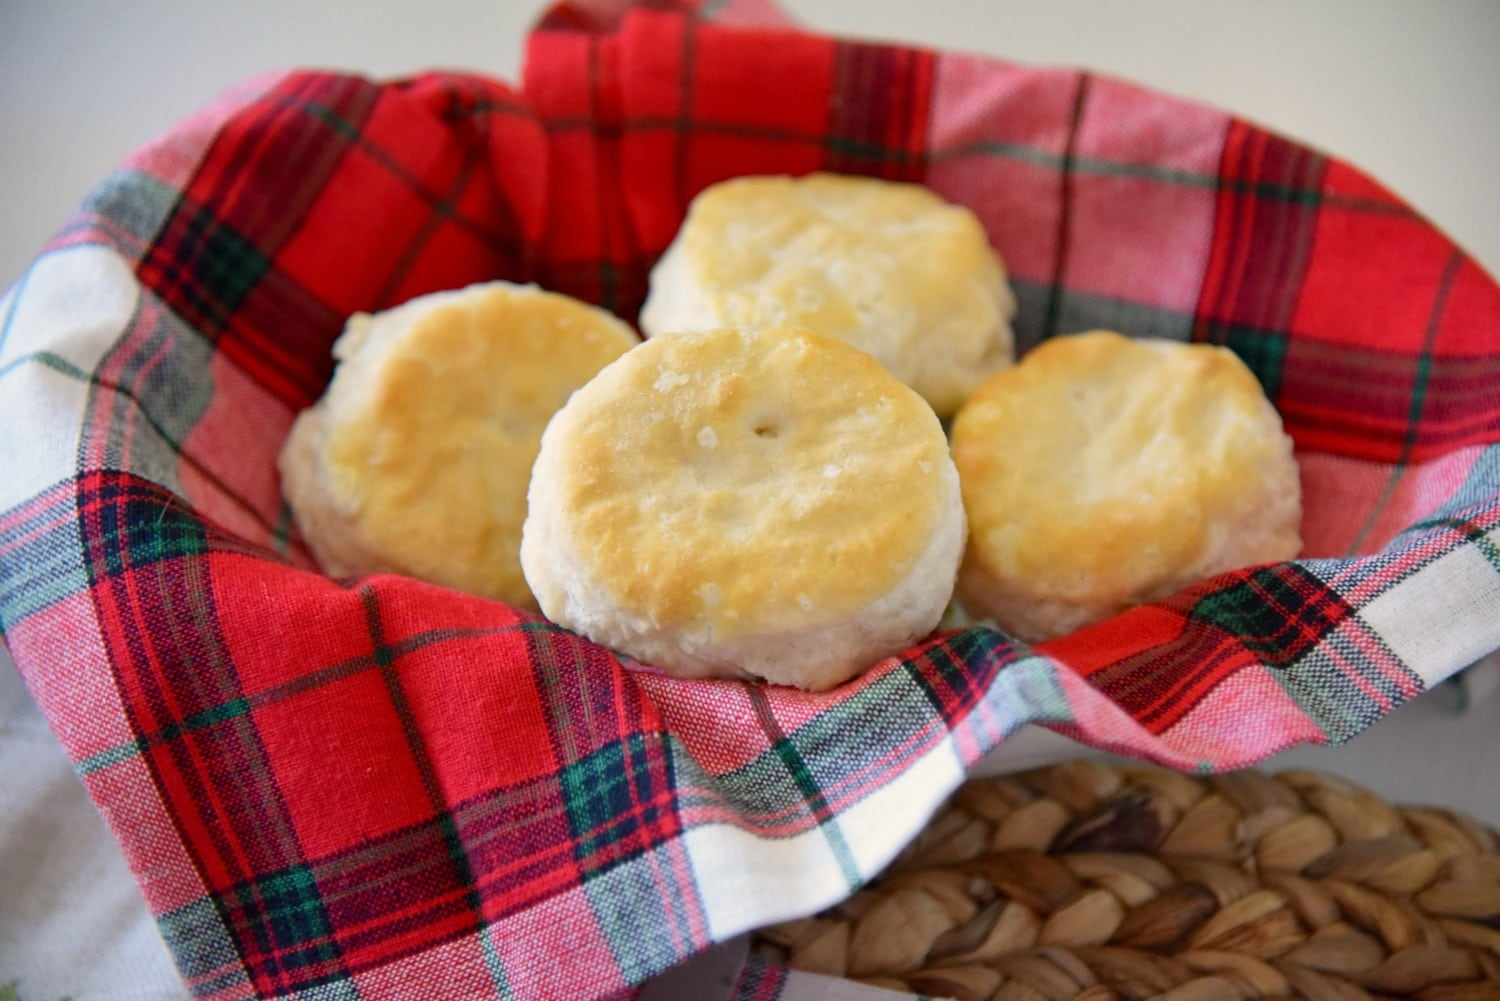 Pillsbury Southern Biscuits